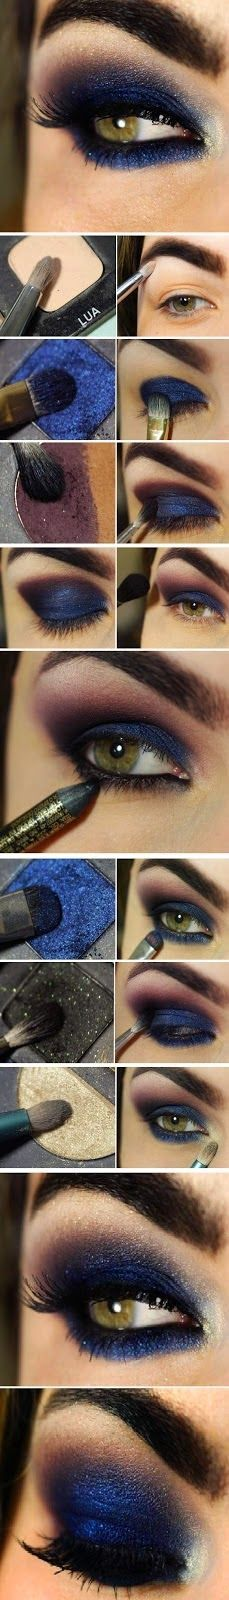 Image via How to Apply Smokey Eyeshadow Step by Step Image via See make-up ideas Step by Step. Make-up in purple and blue tones. Image via Make-up lessons for beginners as beautif Makeup Tutorial Step By Step, Smokey Eye Makeup Tutorial, Makeup Tutorial For Beginners, Eye Tutorial, Love Makeup, Makeup Inspo, Makeup Inspiration, Makeup Looks, Makeup Ideas